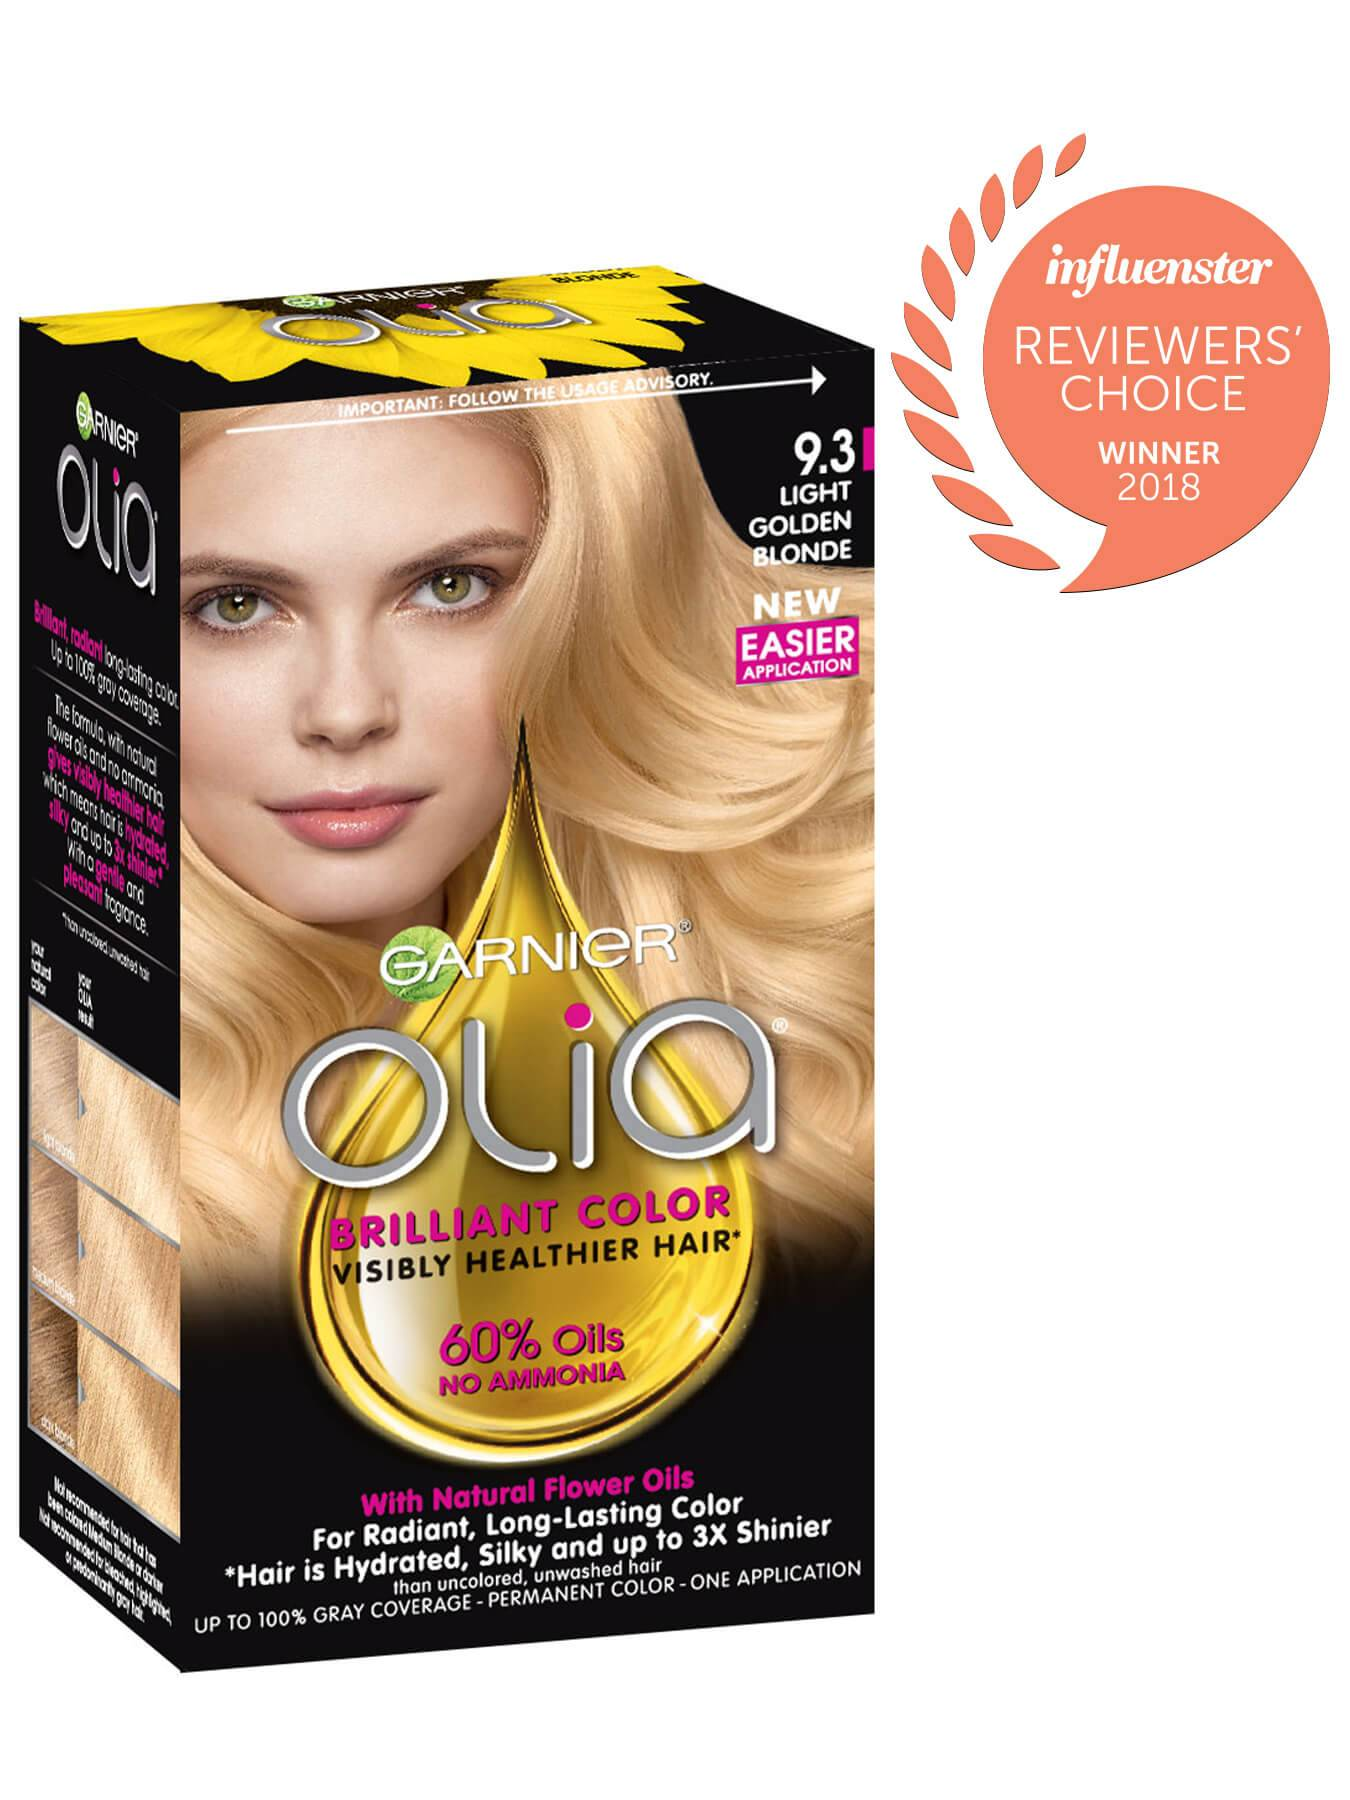 Garnier Olia Packshot Award 9.3 Light Golden Blonde